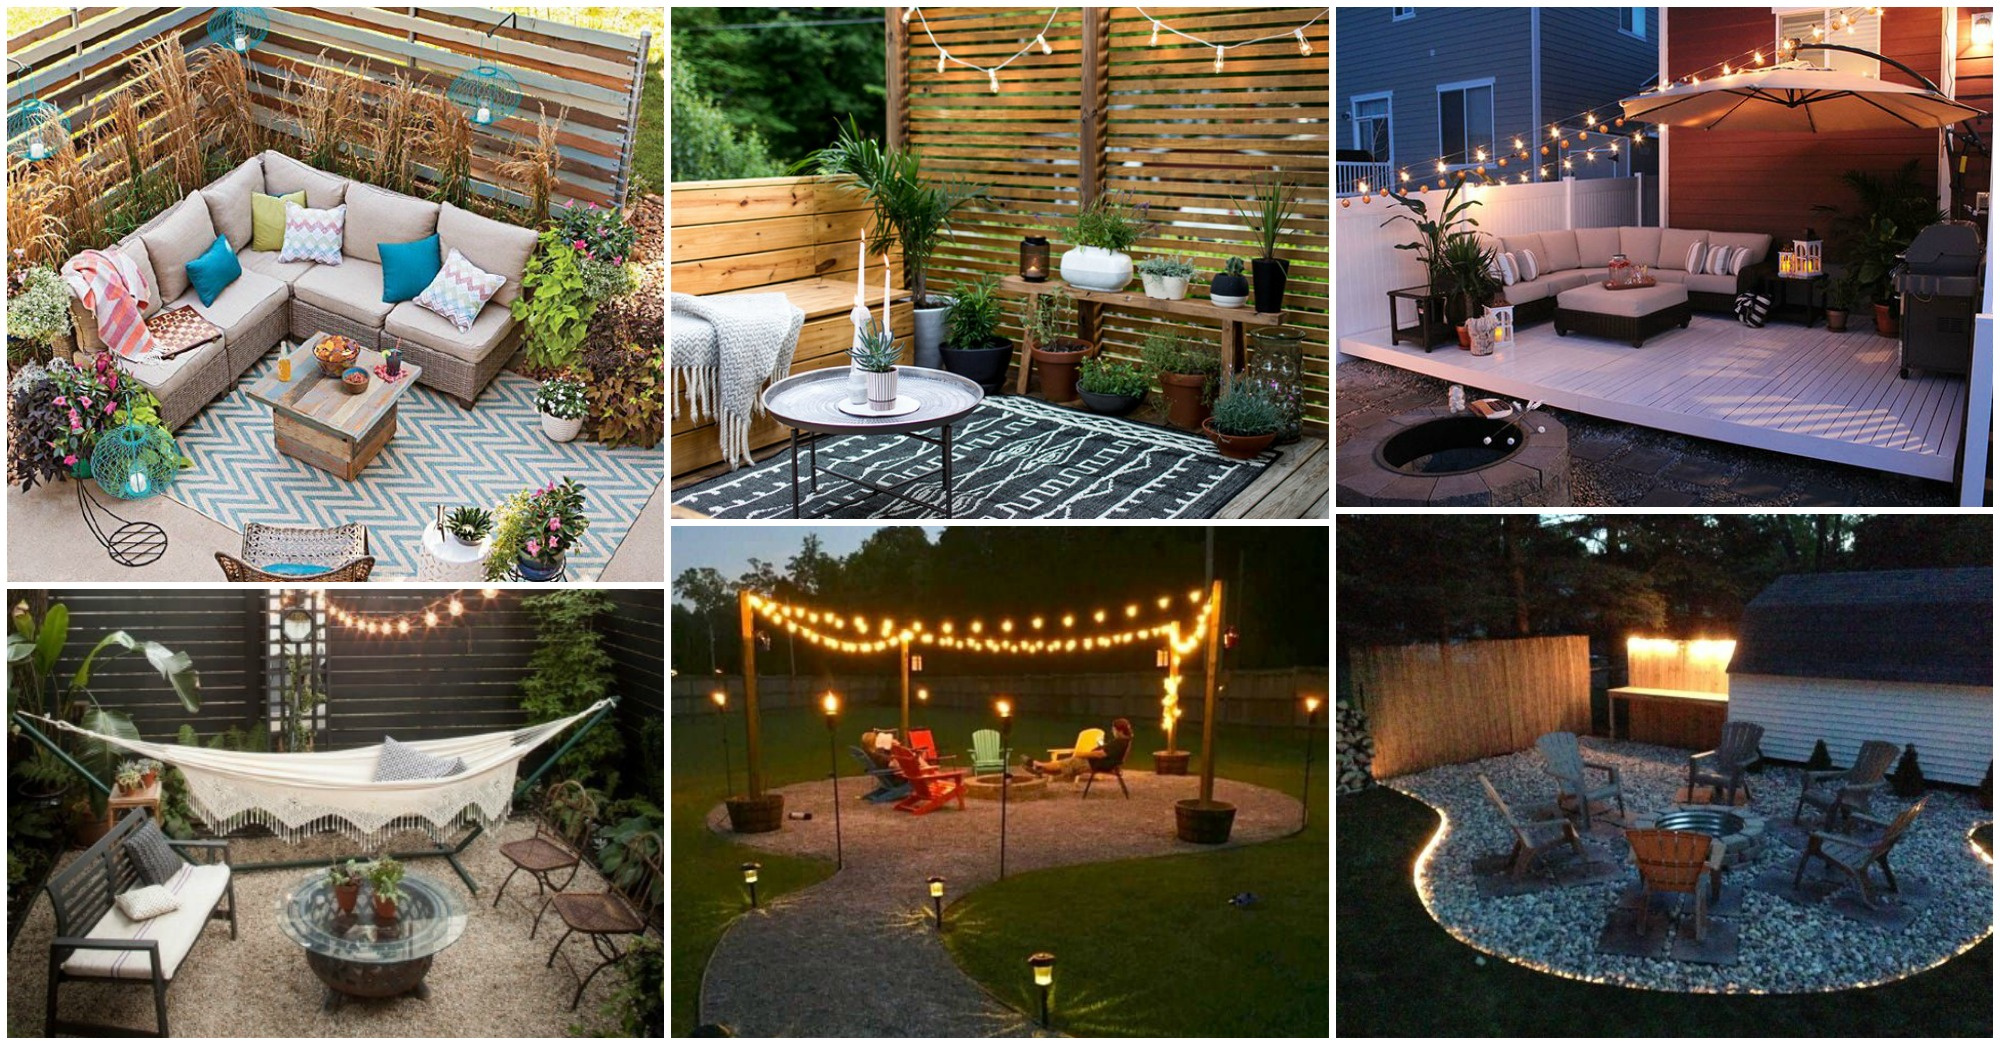 Check Out These Patio Ideas On A Budget And You Will Not ... on Backyard Patios On A Budget id=18837